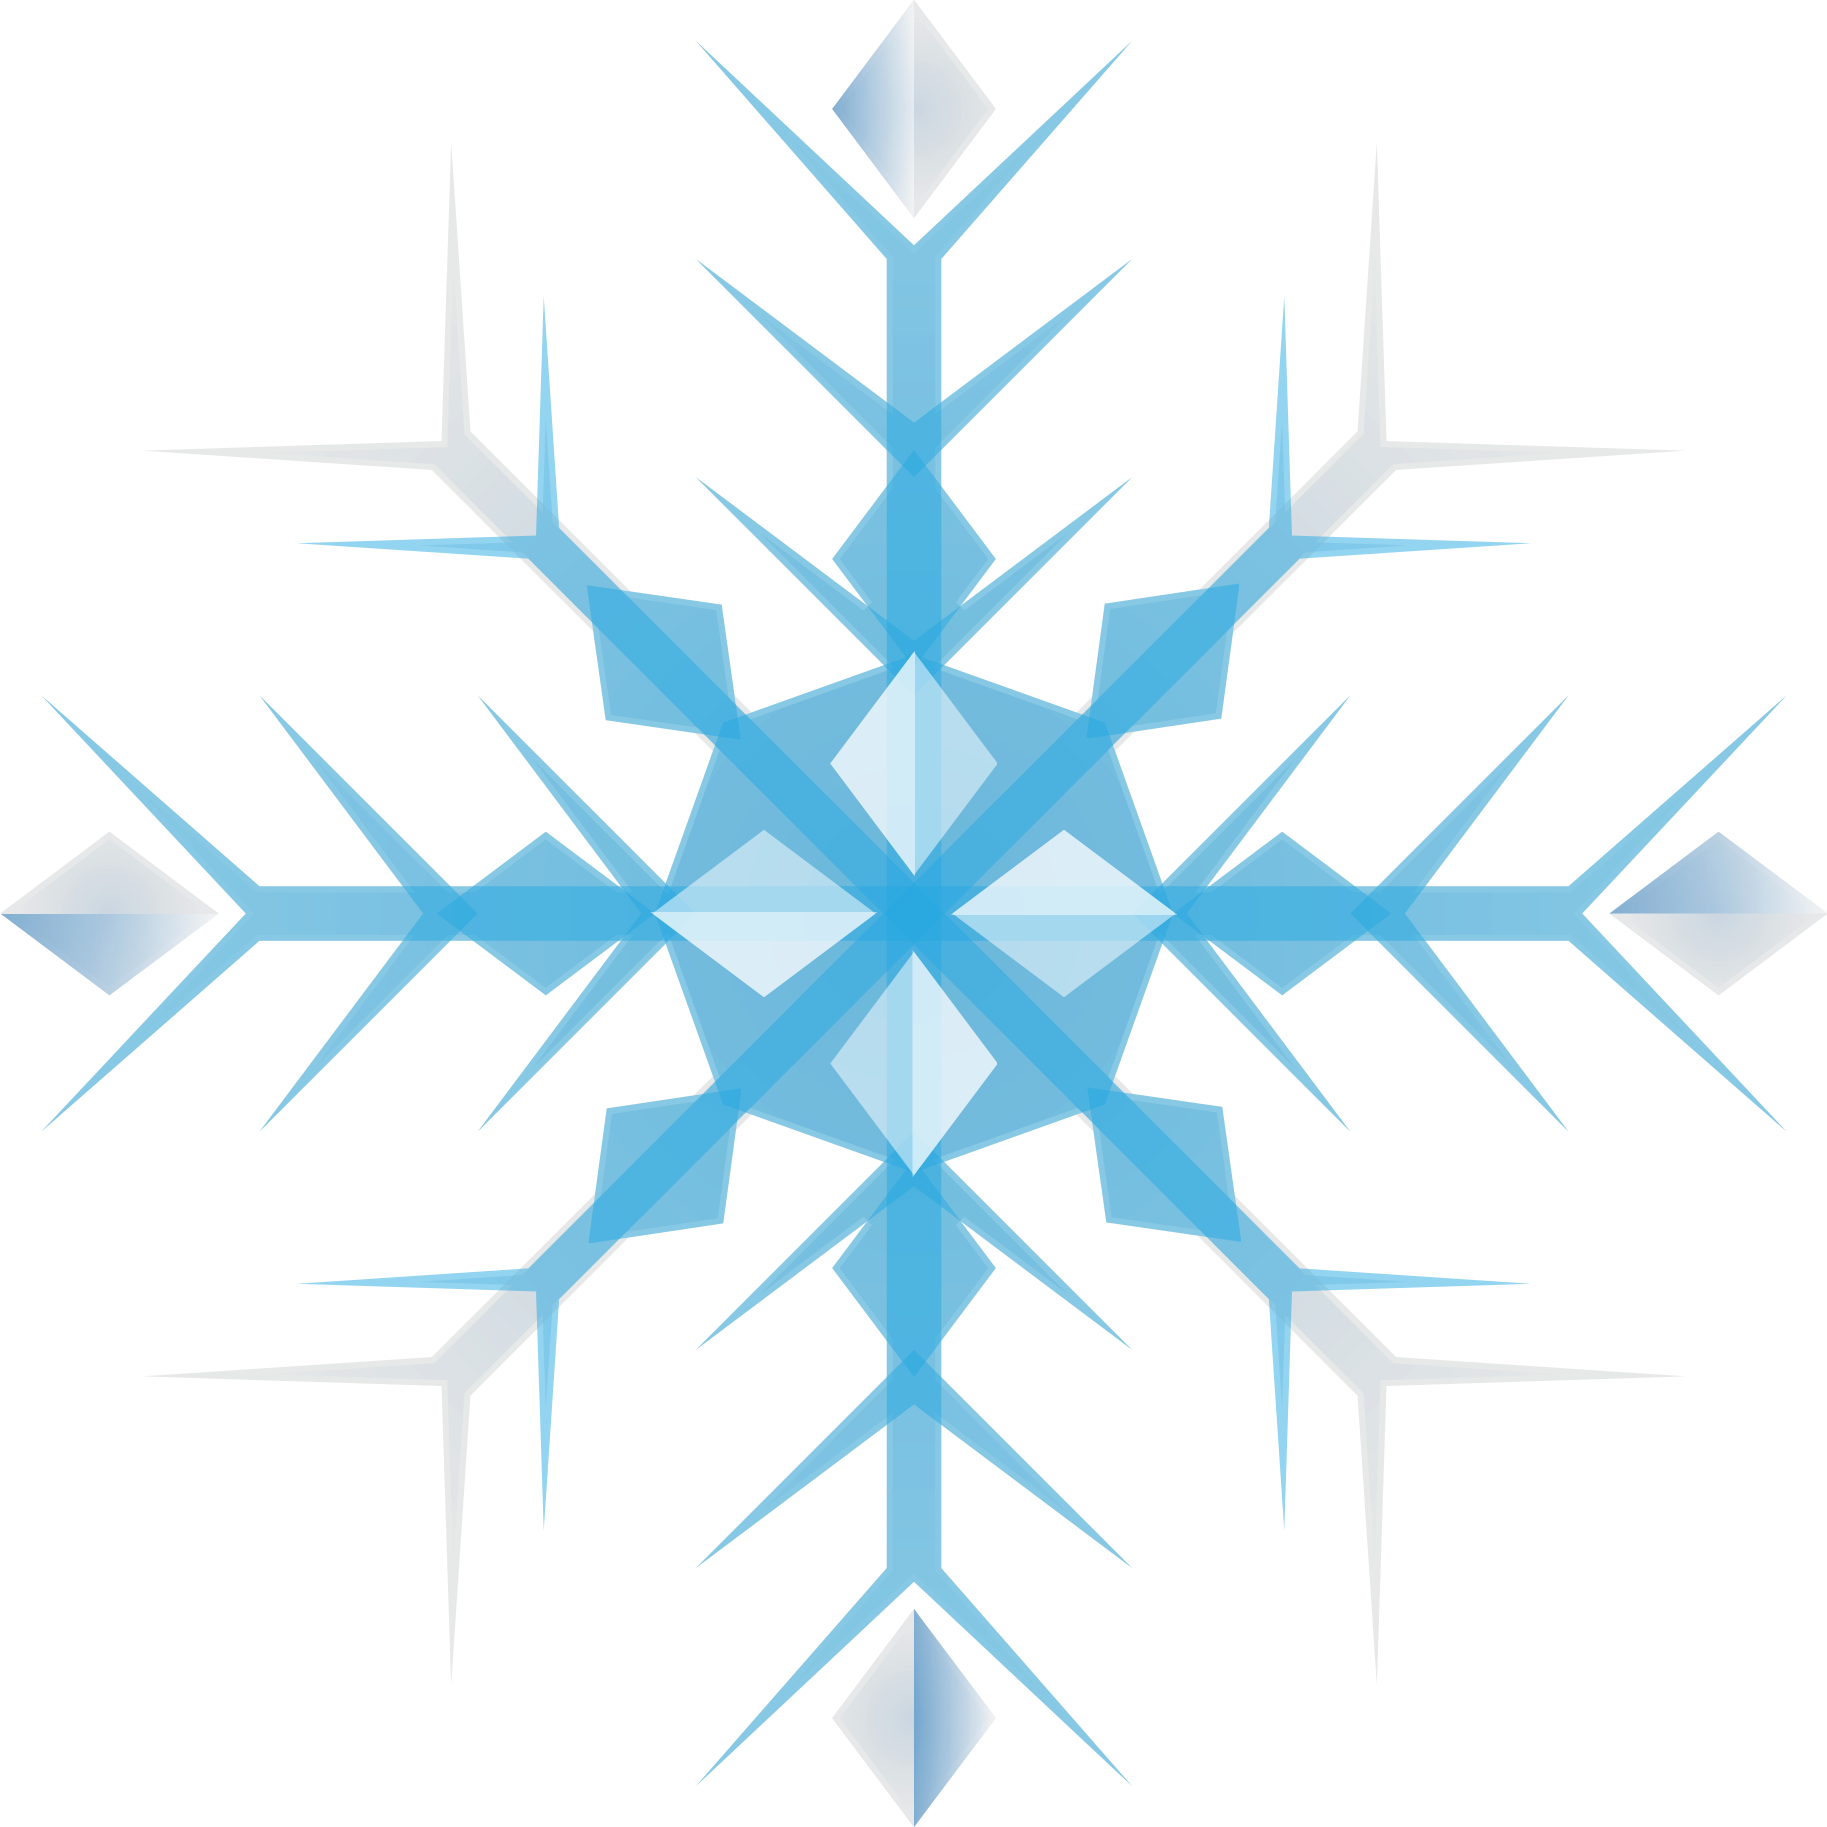 Emotion snowflake clipart. Transparent free download best